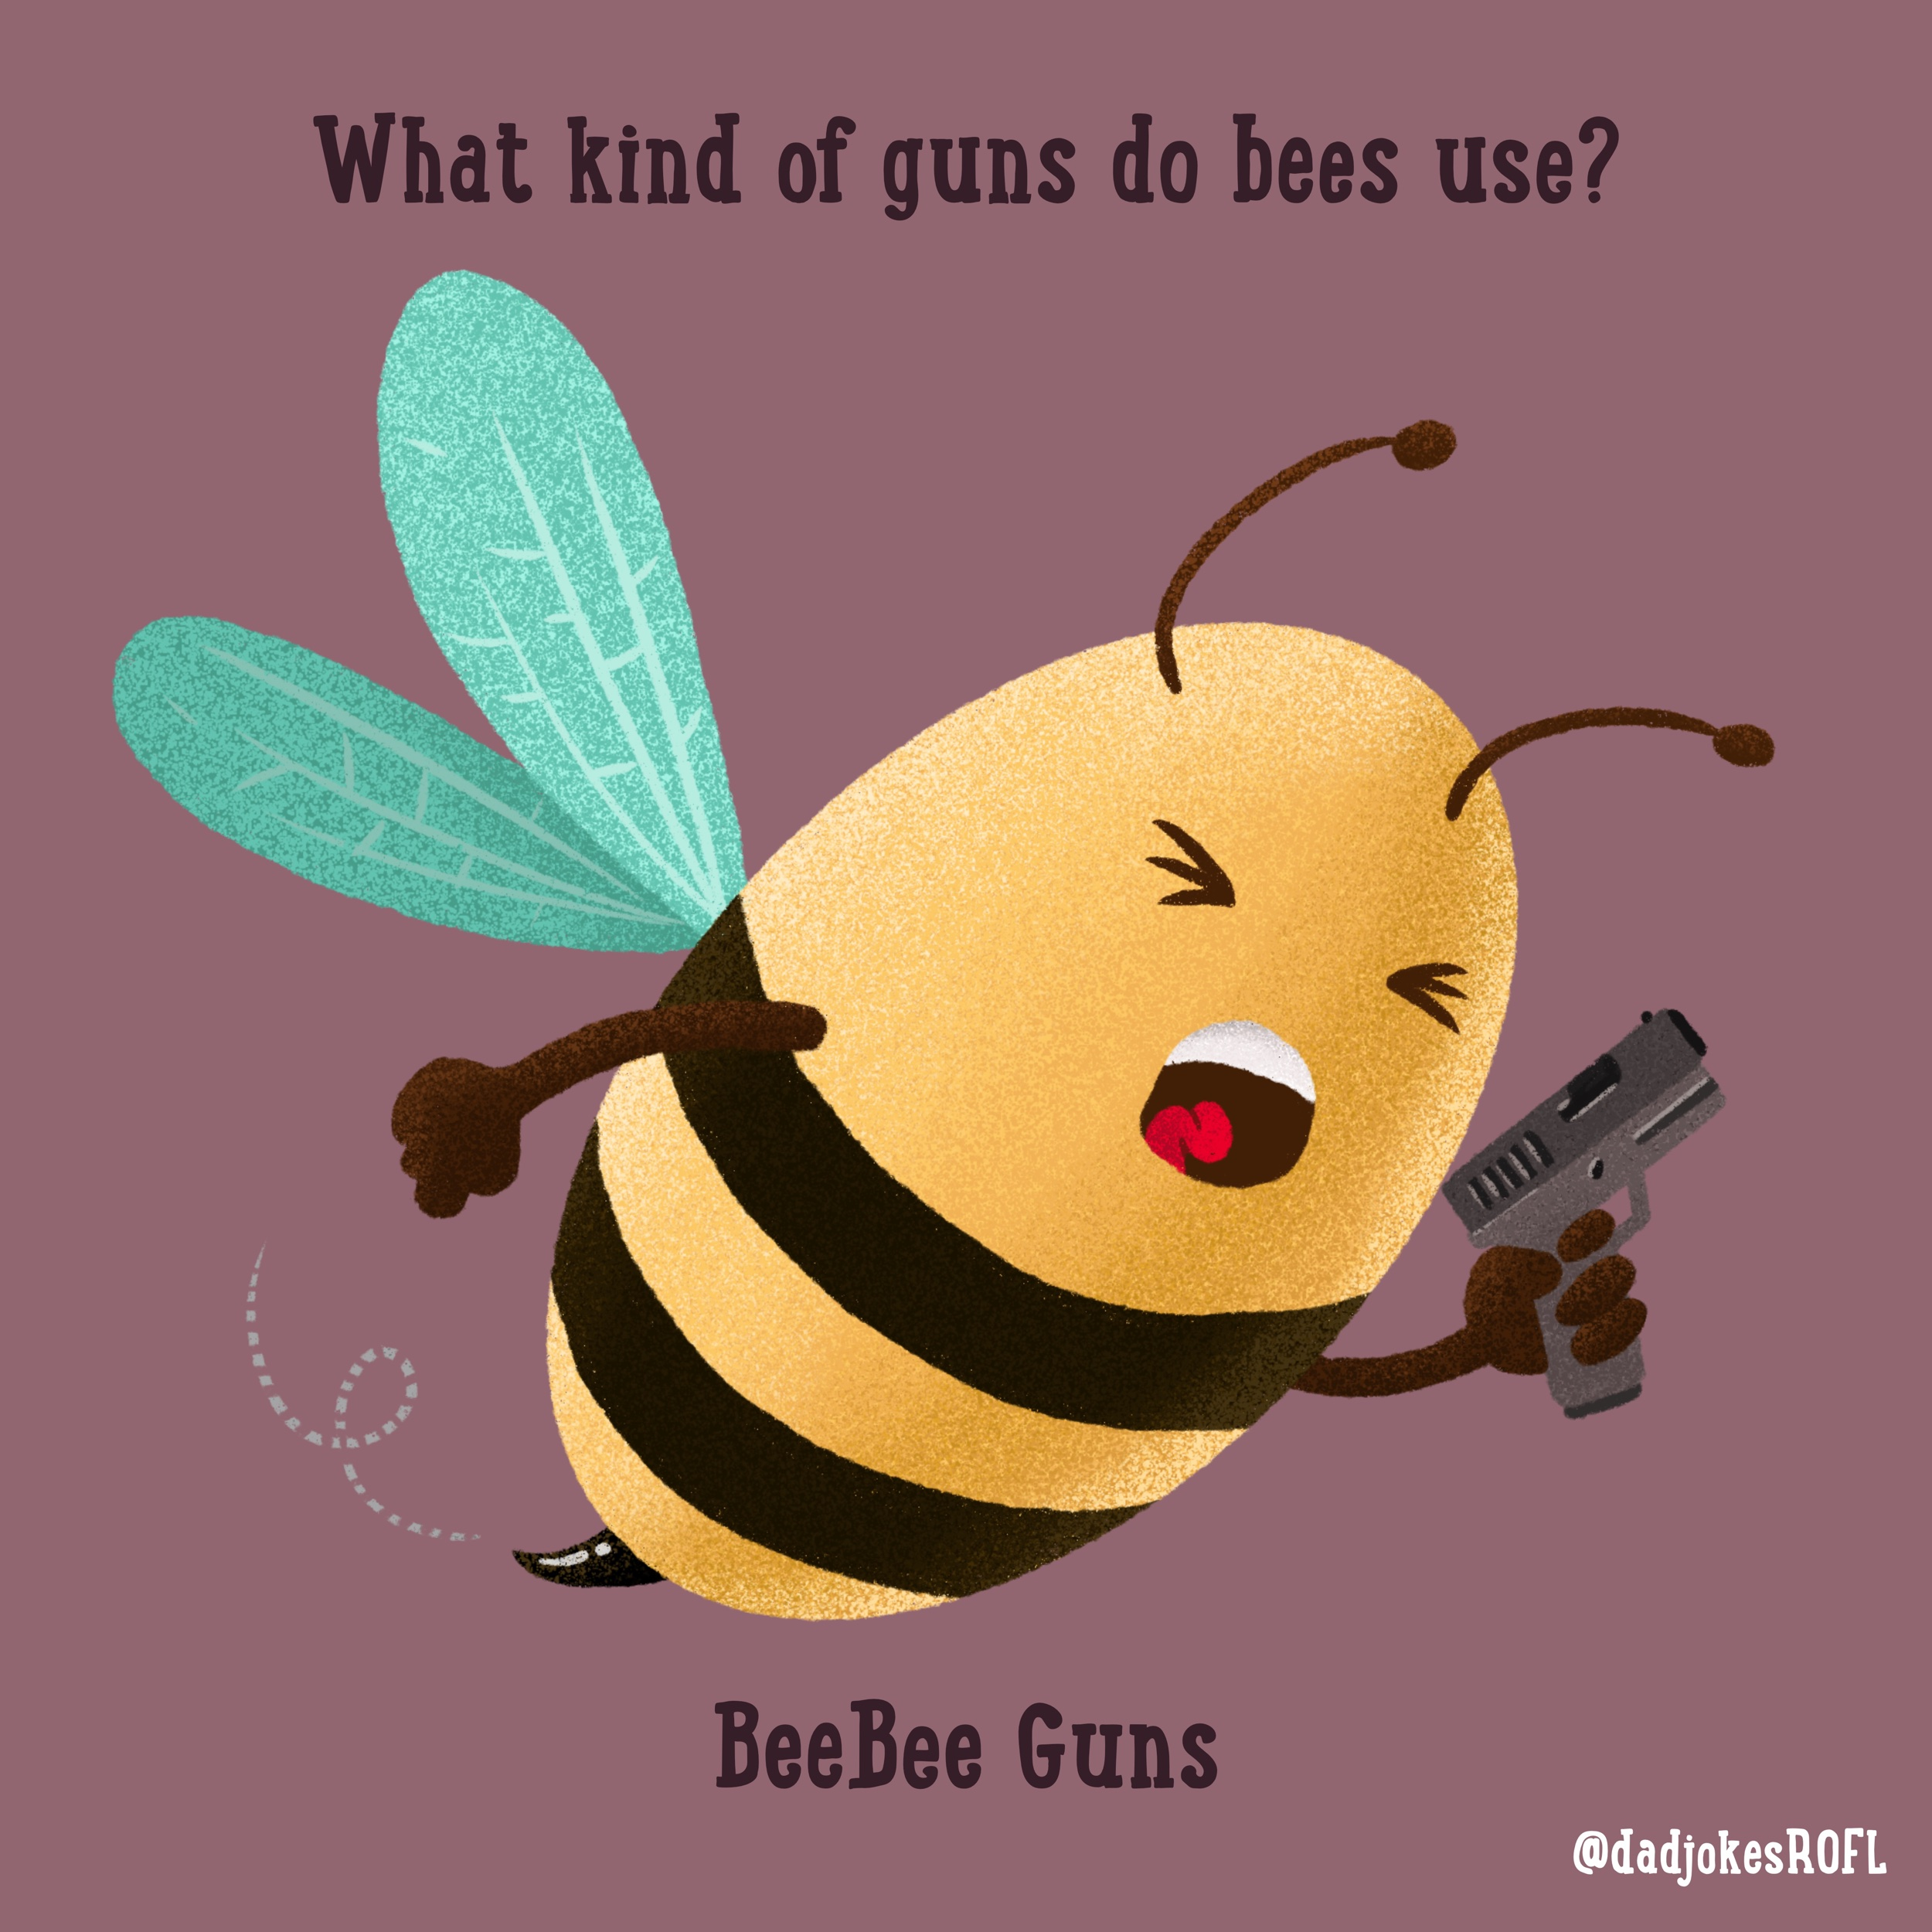 What kind of guns do bees use?  BeeBee guns